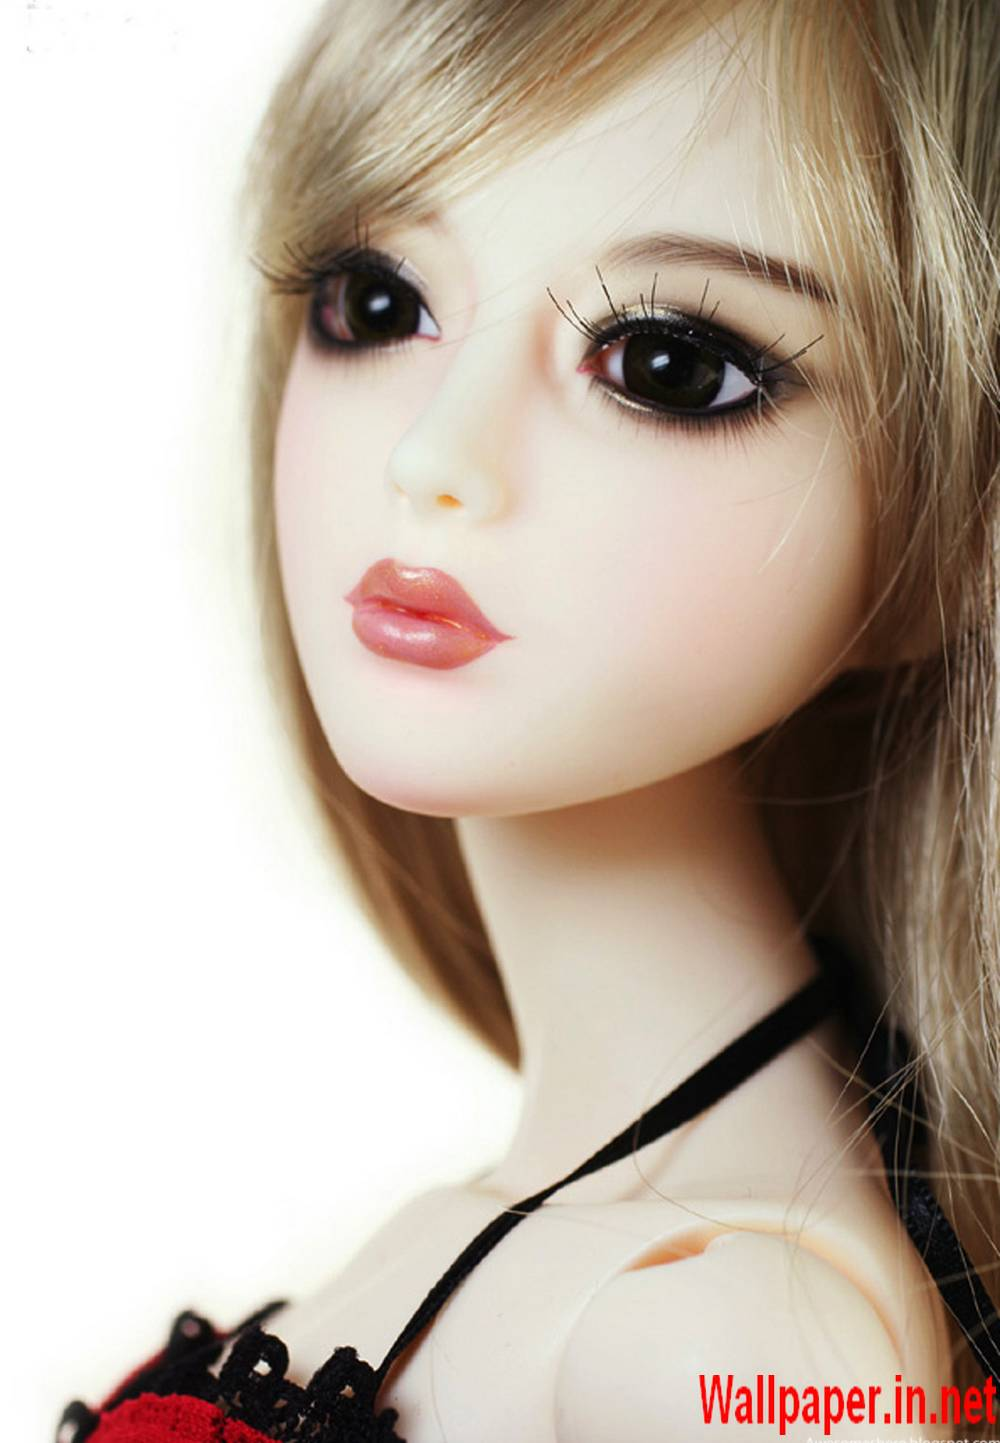 barbie doll wallpapers wallpaper cave clip art covenant clip art cover pages for facebook